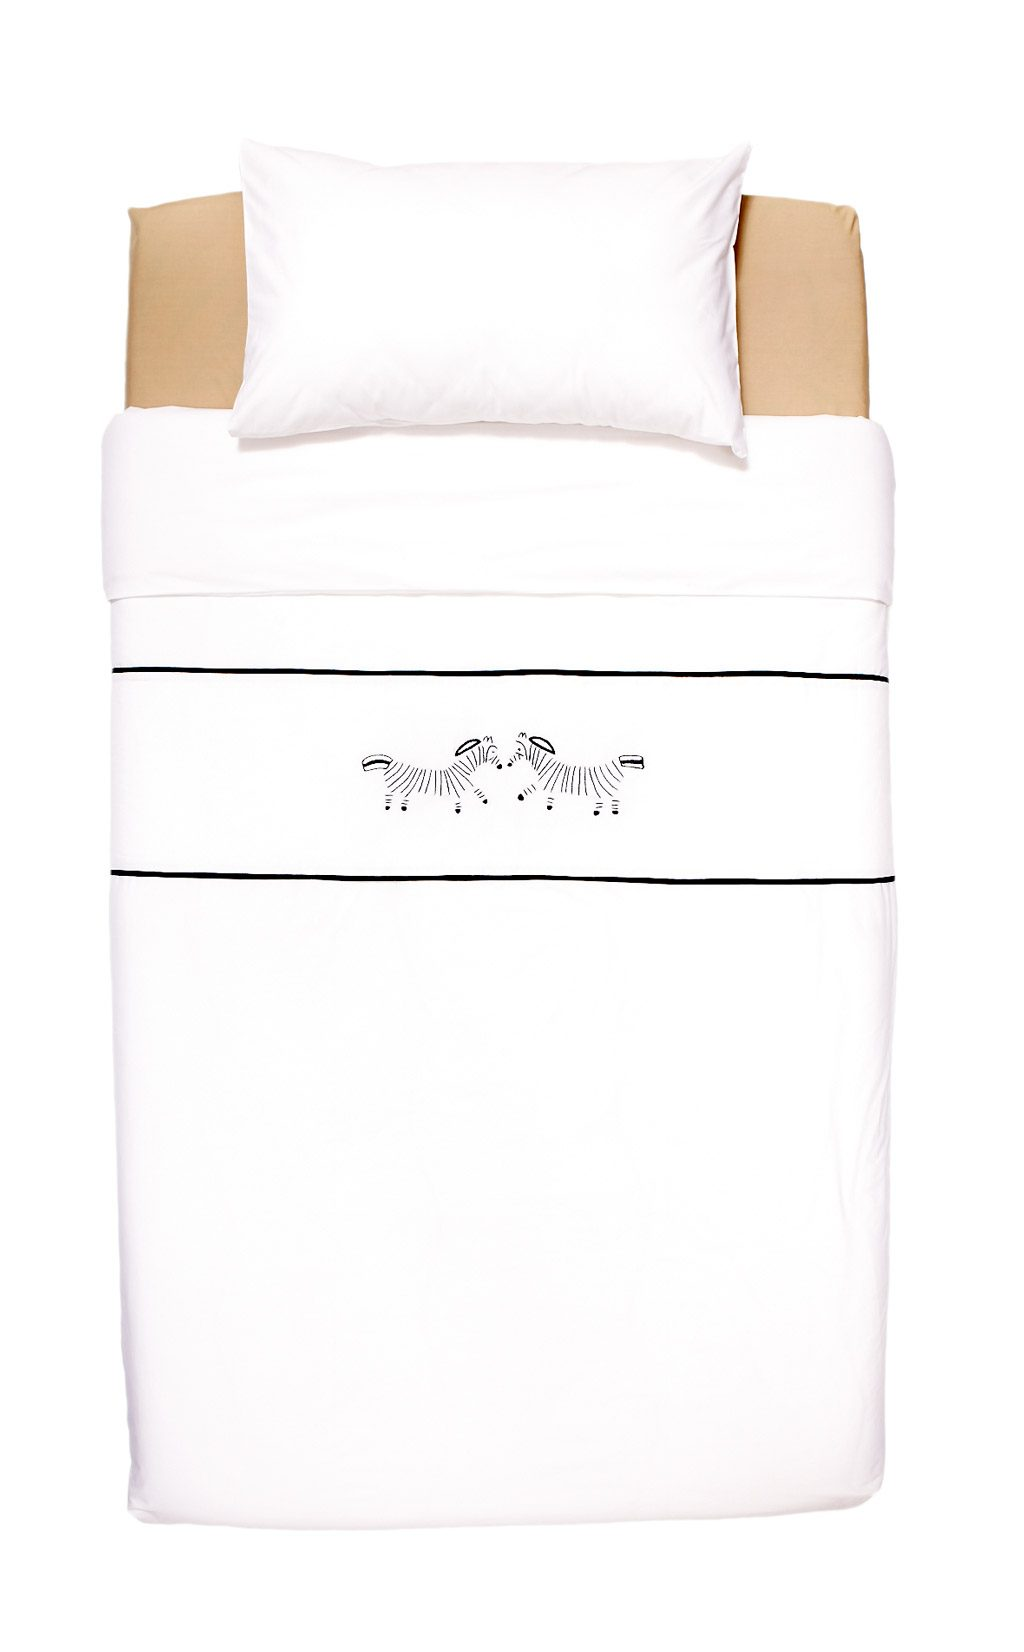 Bed Linen with hand embroidered zebra - top